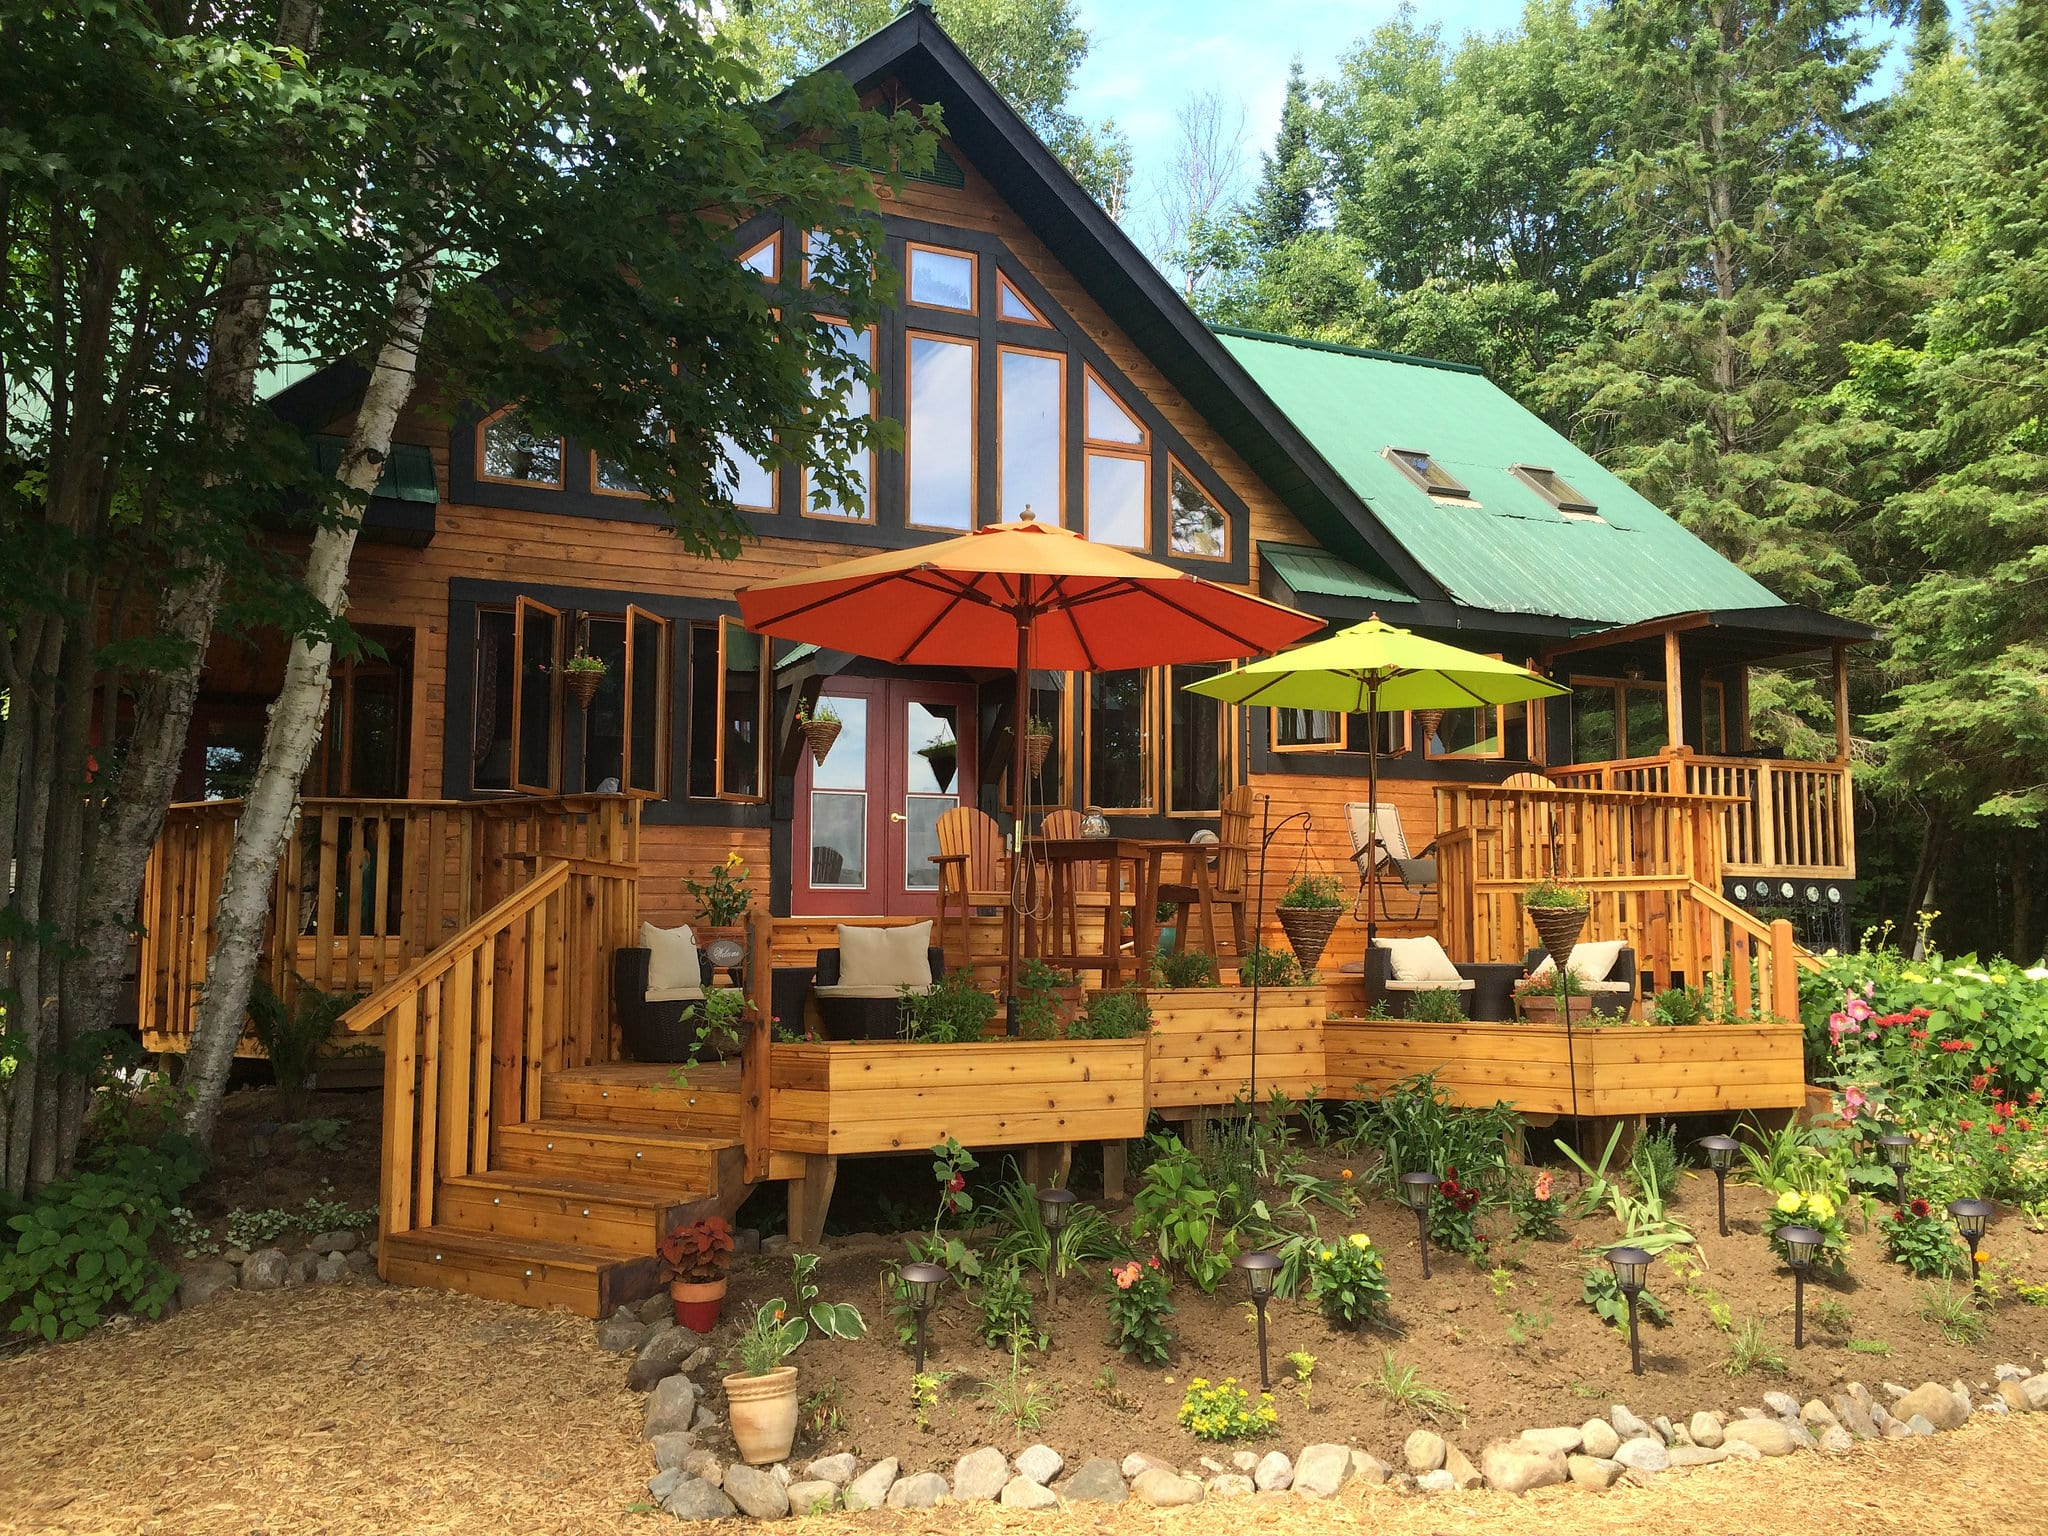 Algonquin Park Adventures & Retreats